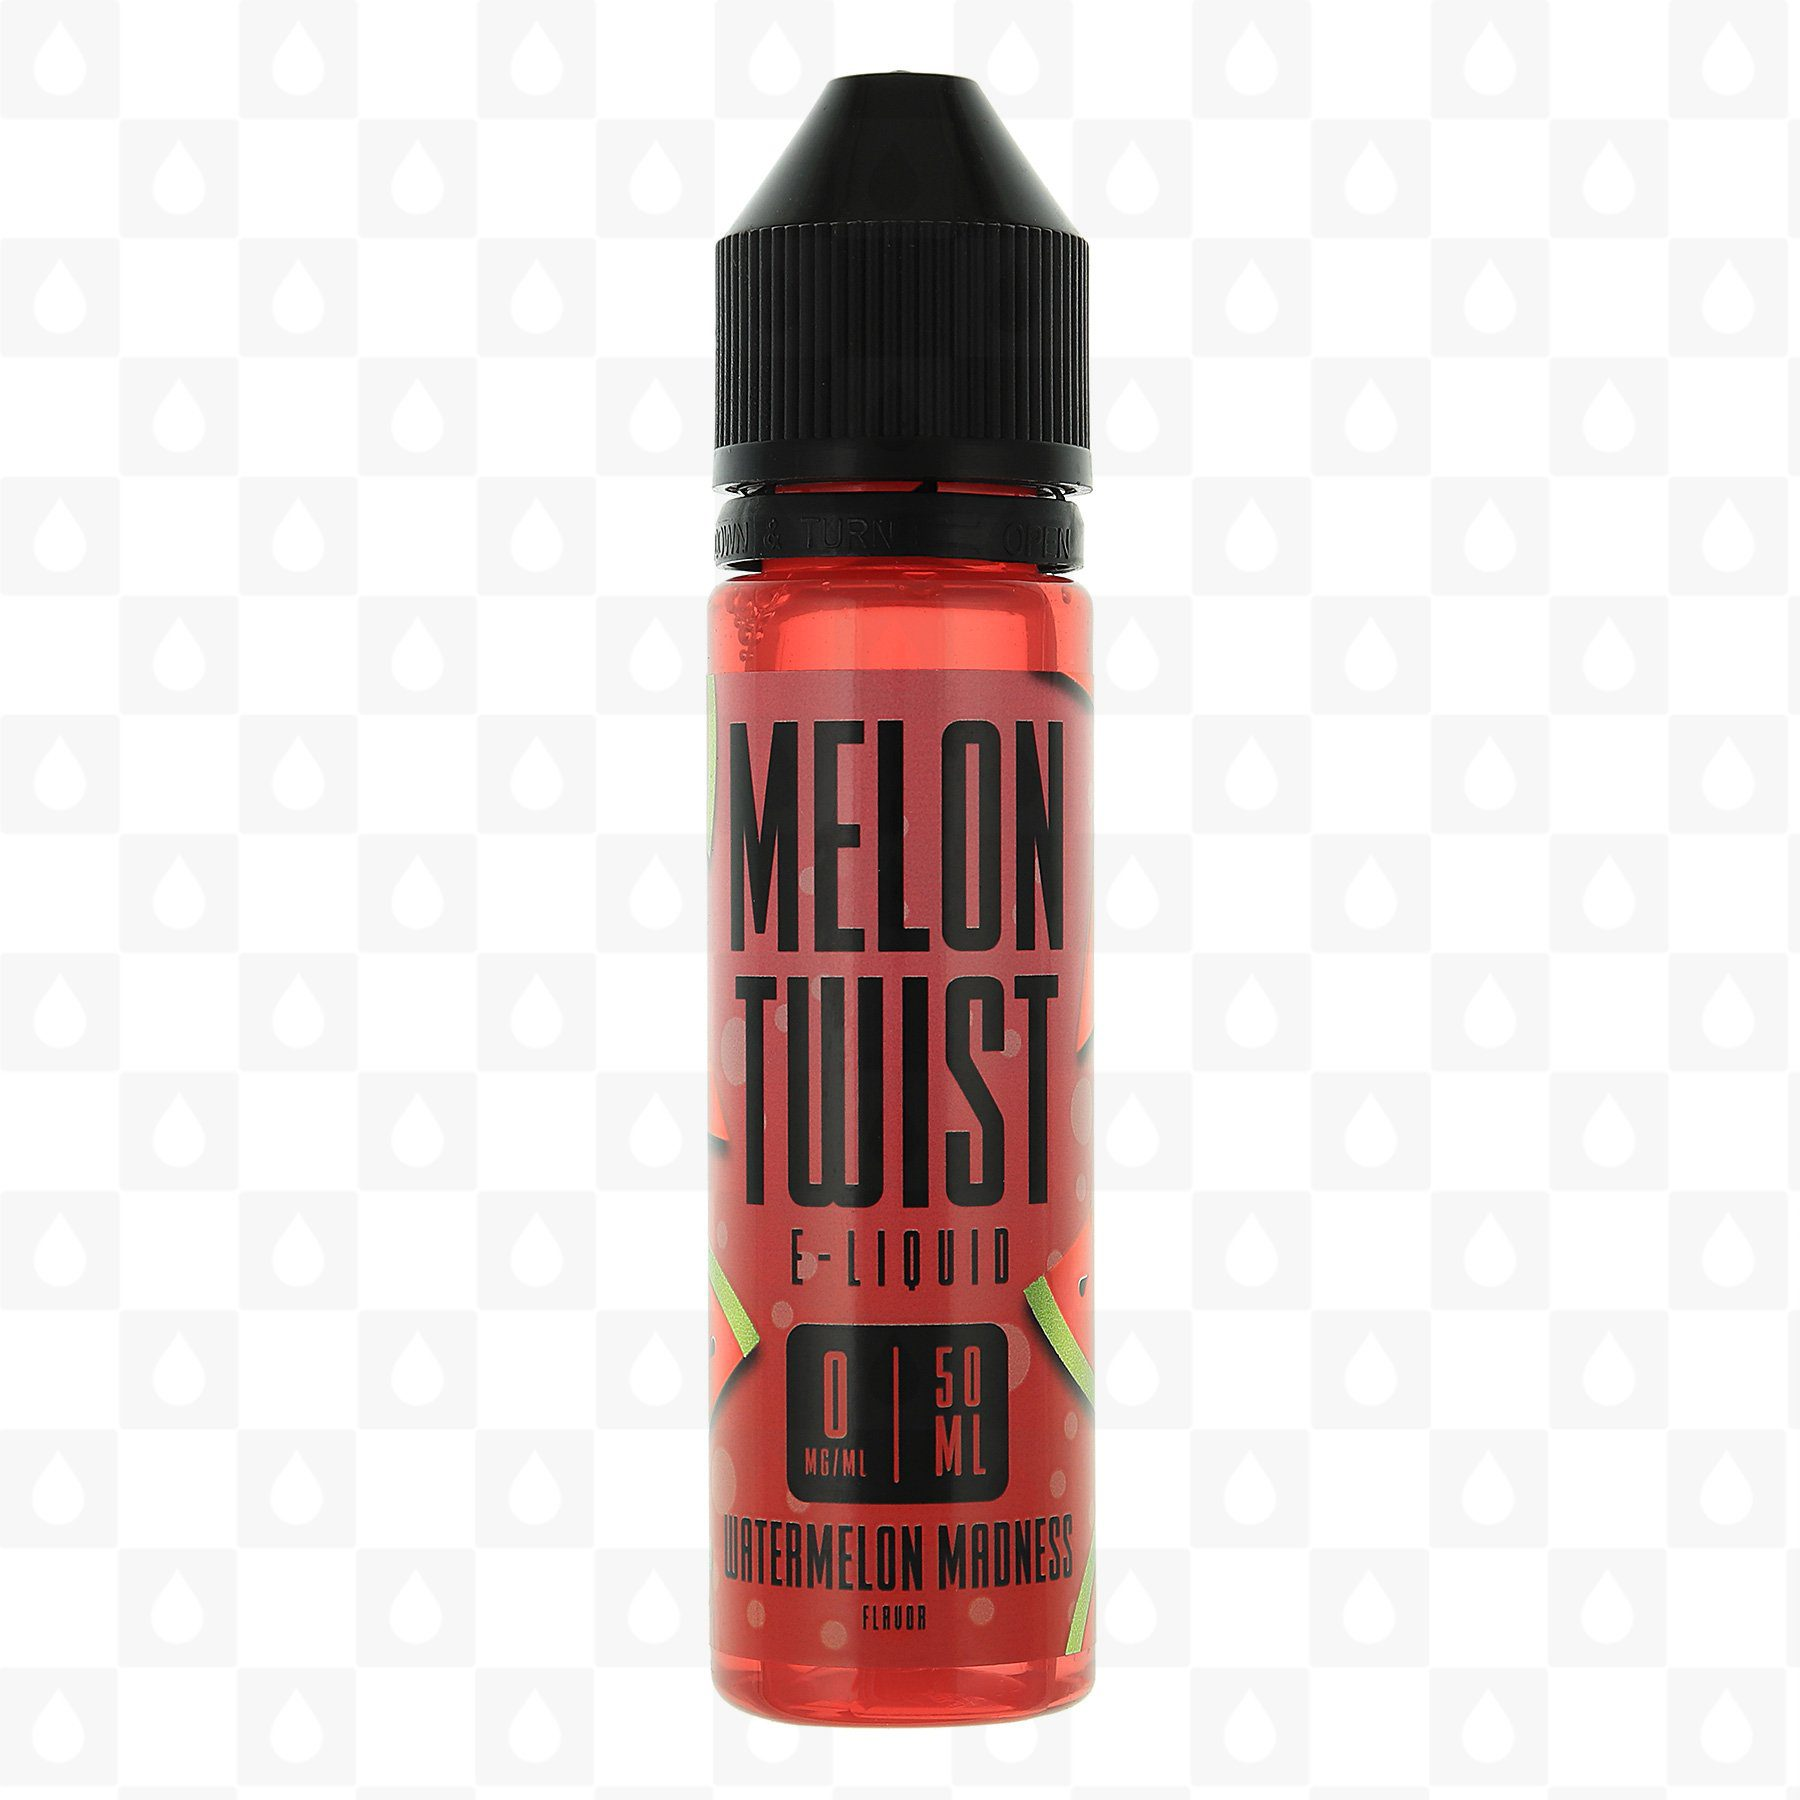 Melon Twist Watermelon Madness 50ml Shortfill E-Liquid